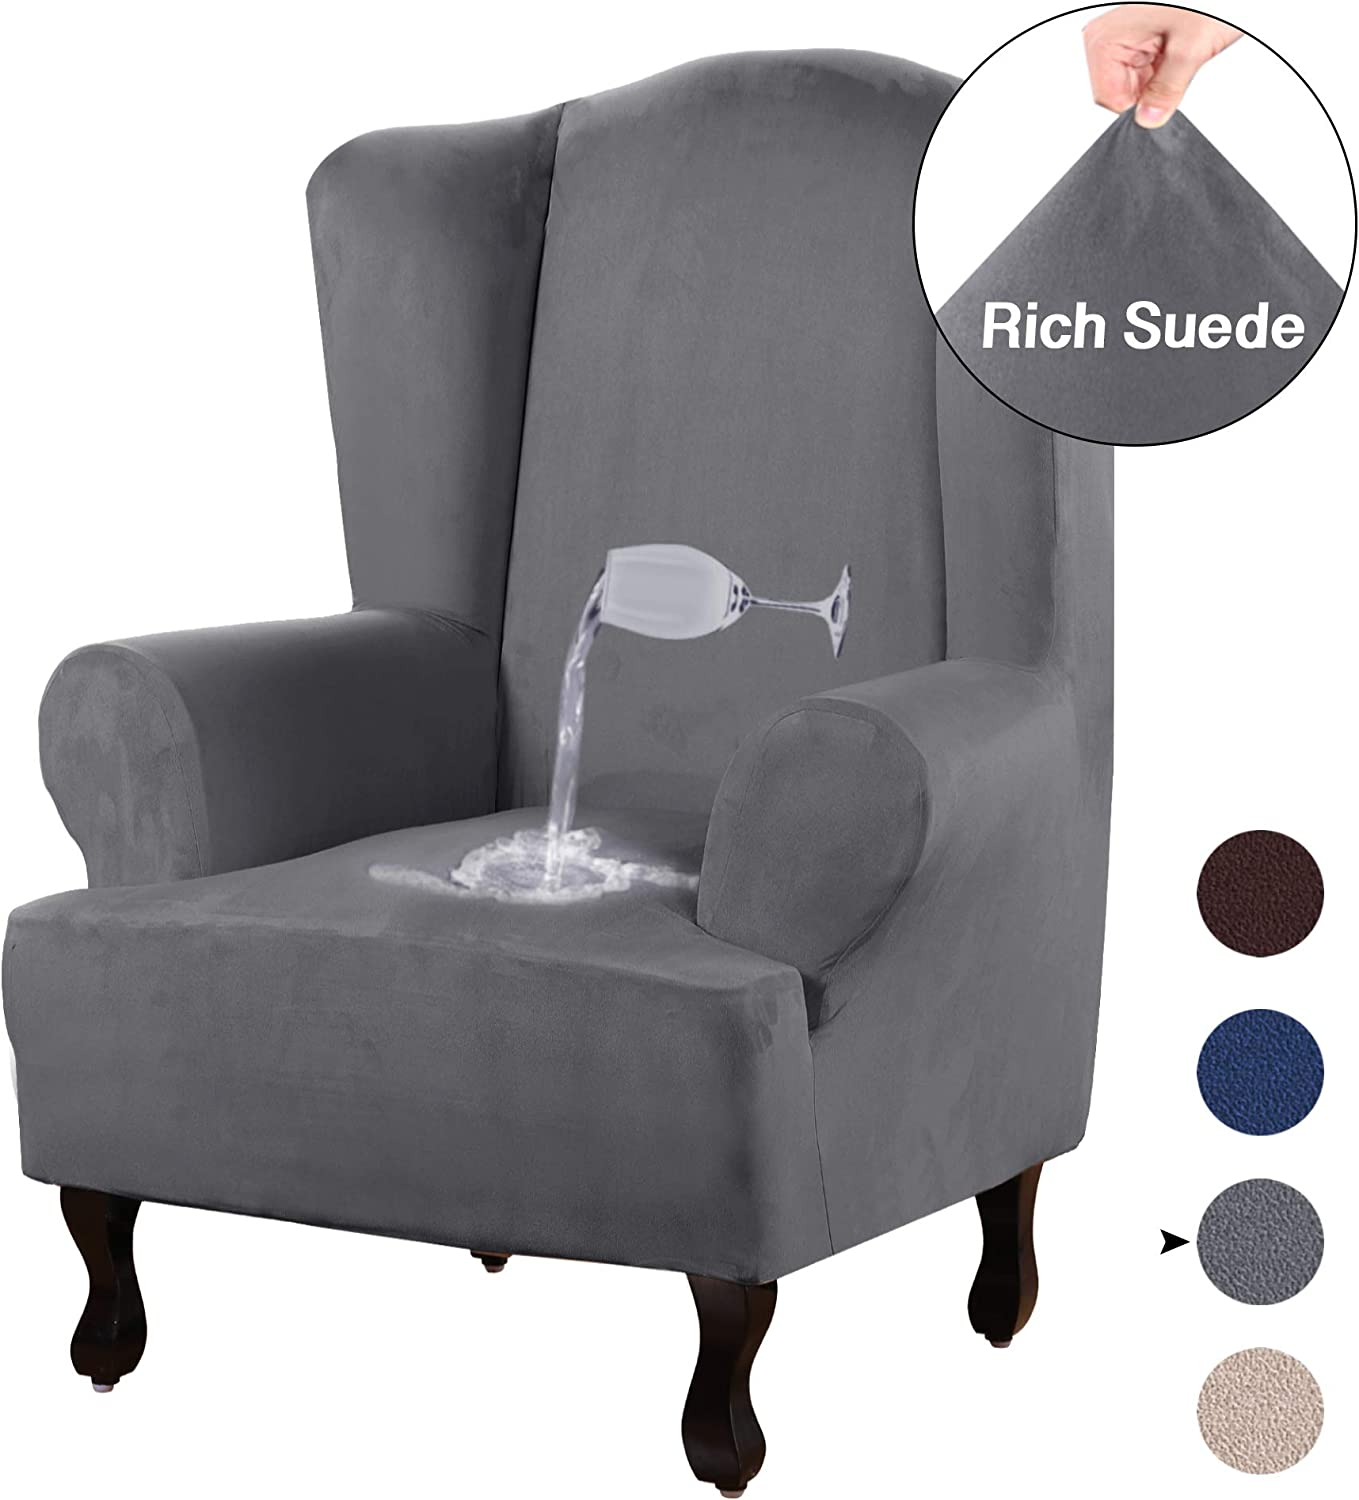 Stretch Spandex Sofa Cover Wingback Chair Slipcover Protector ~Deep Grey